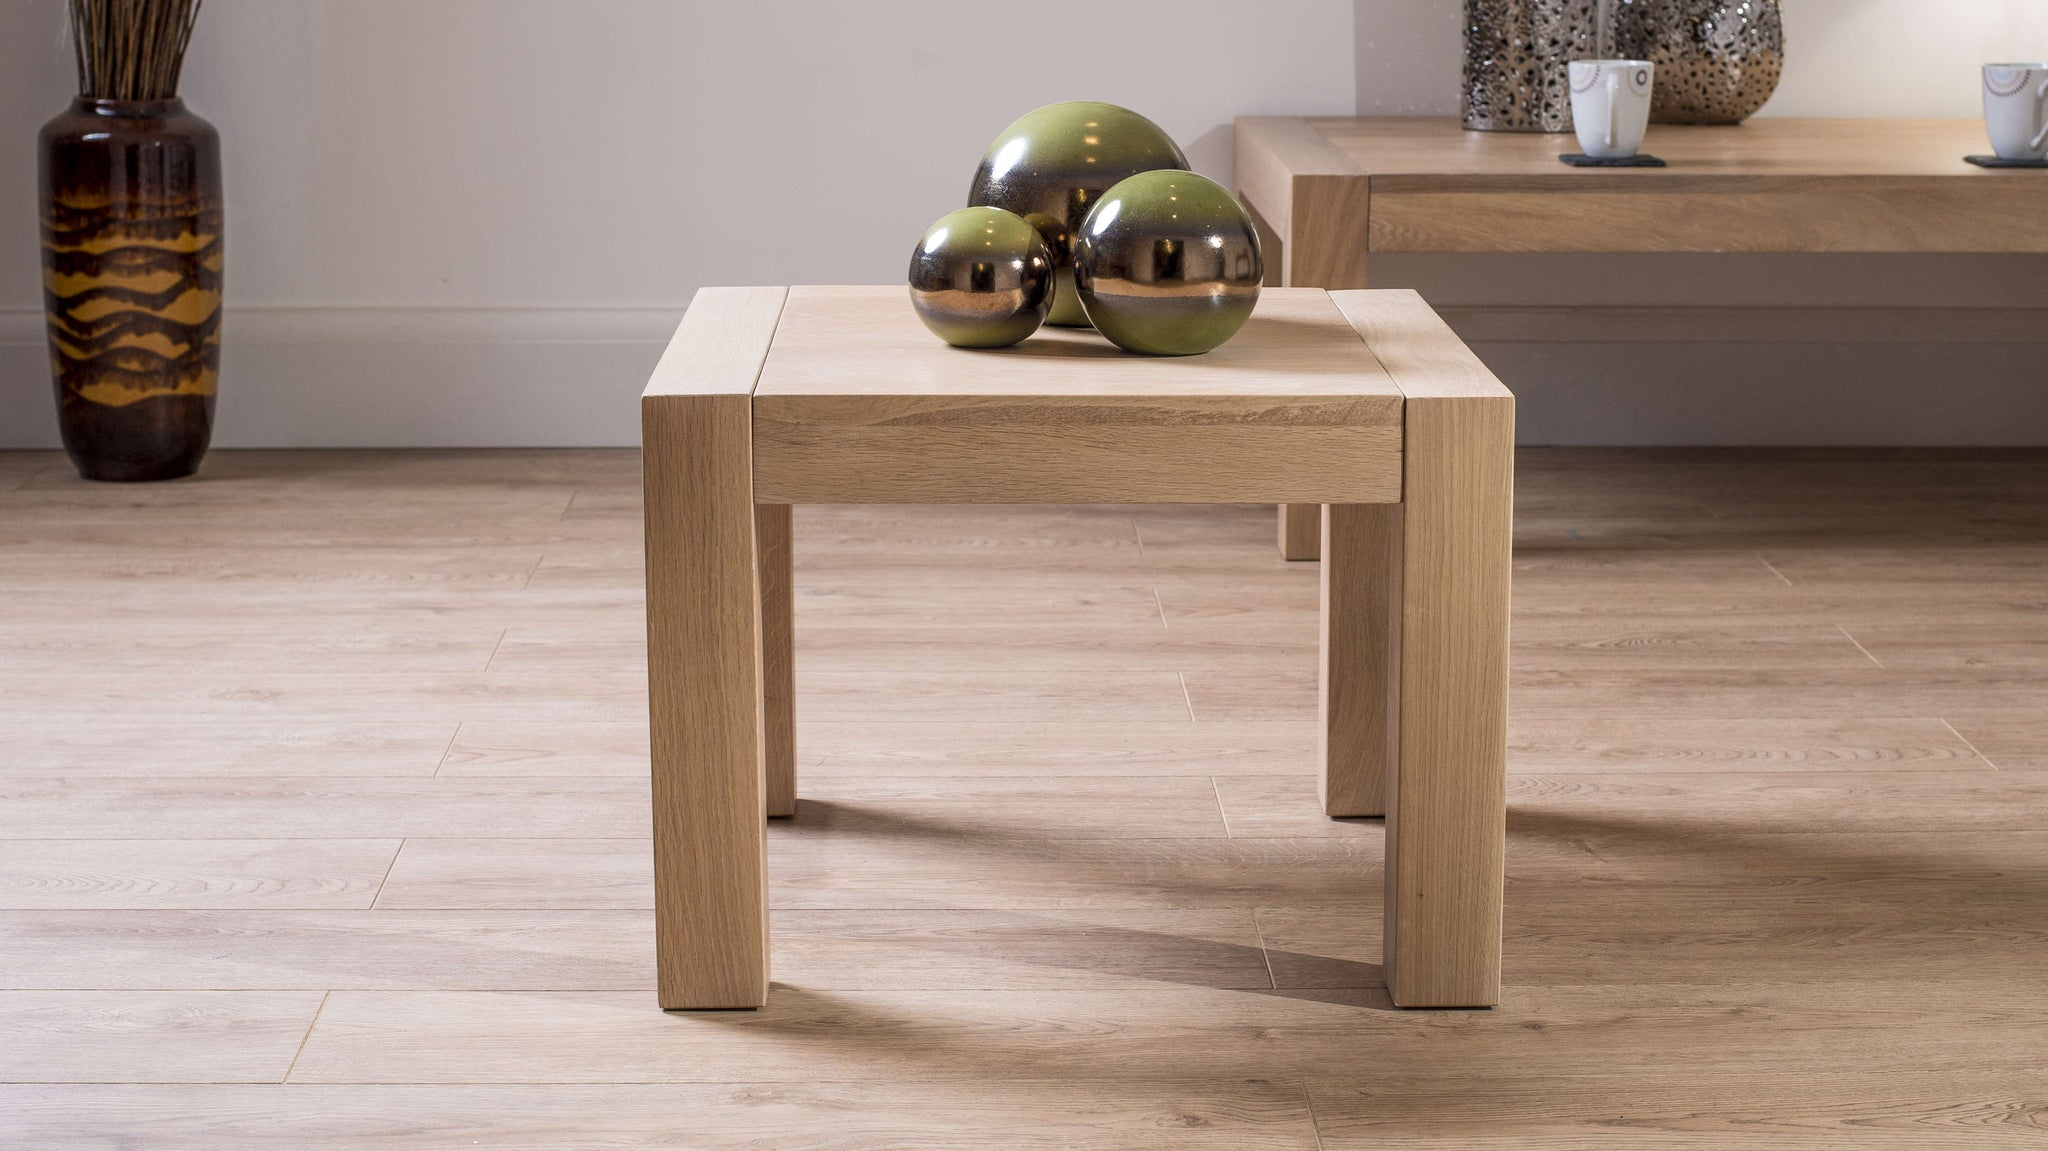 Stylish Small Wooden Lamp Table